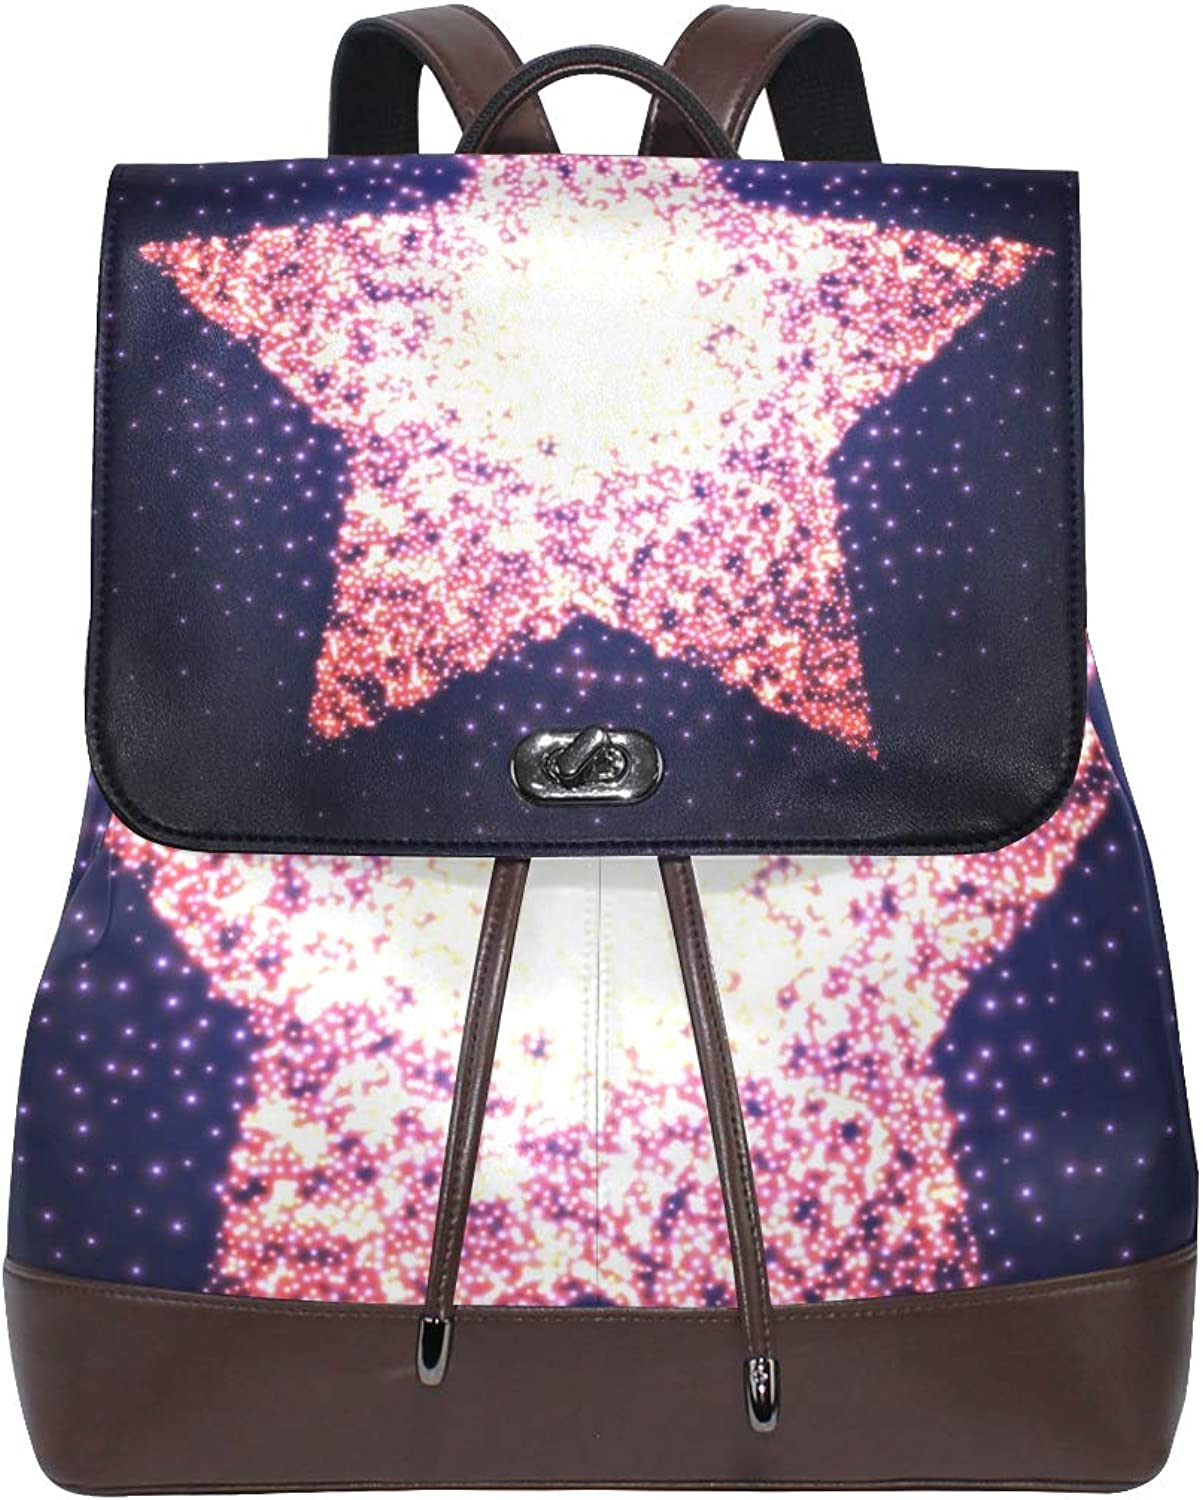 Fashion Shoulder Bag Rucksack PU Leather Women Girls Ladies Backpack Travel Bag Red Starry Sky Projector